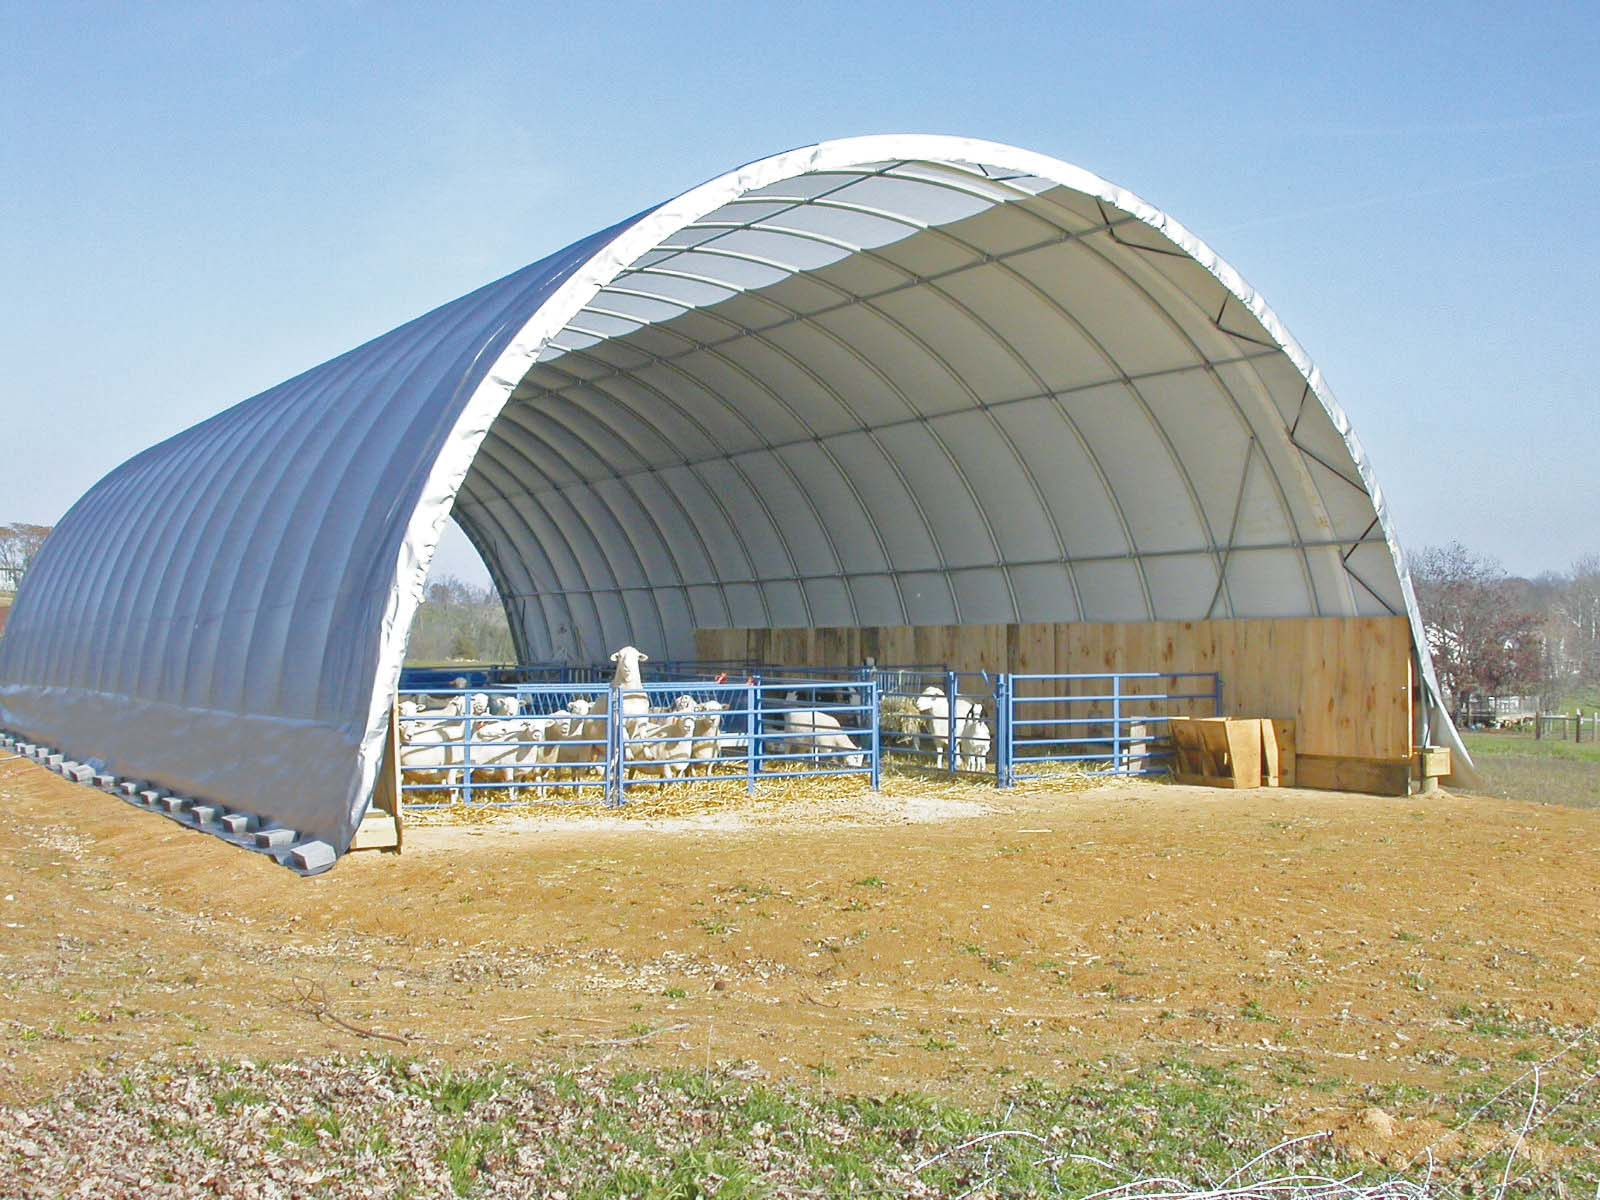 Fabric Buildings & Storage. As the leading manufacturer of hoop barns and fabric structures, we'll keep you covered. Whether you need hay storage, livestock housing or equipment storage, we will manufacture a fabric building to suit your needs.